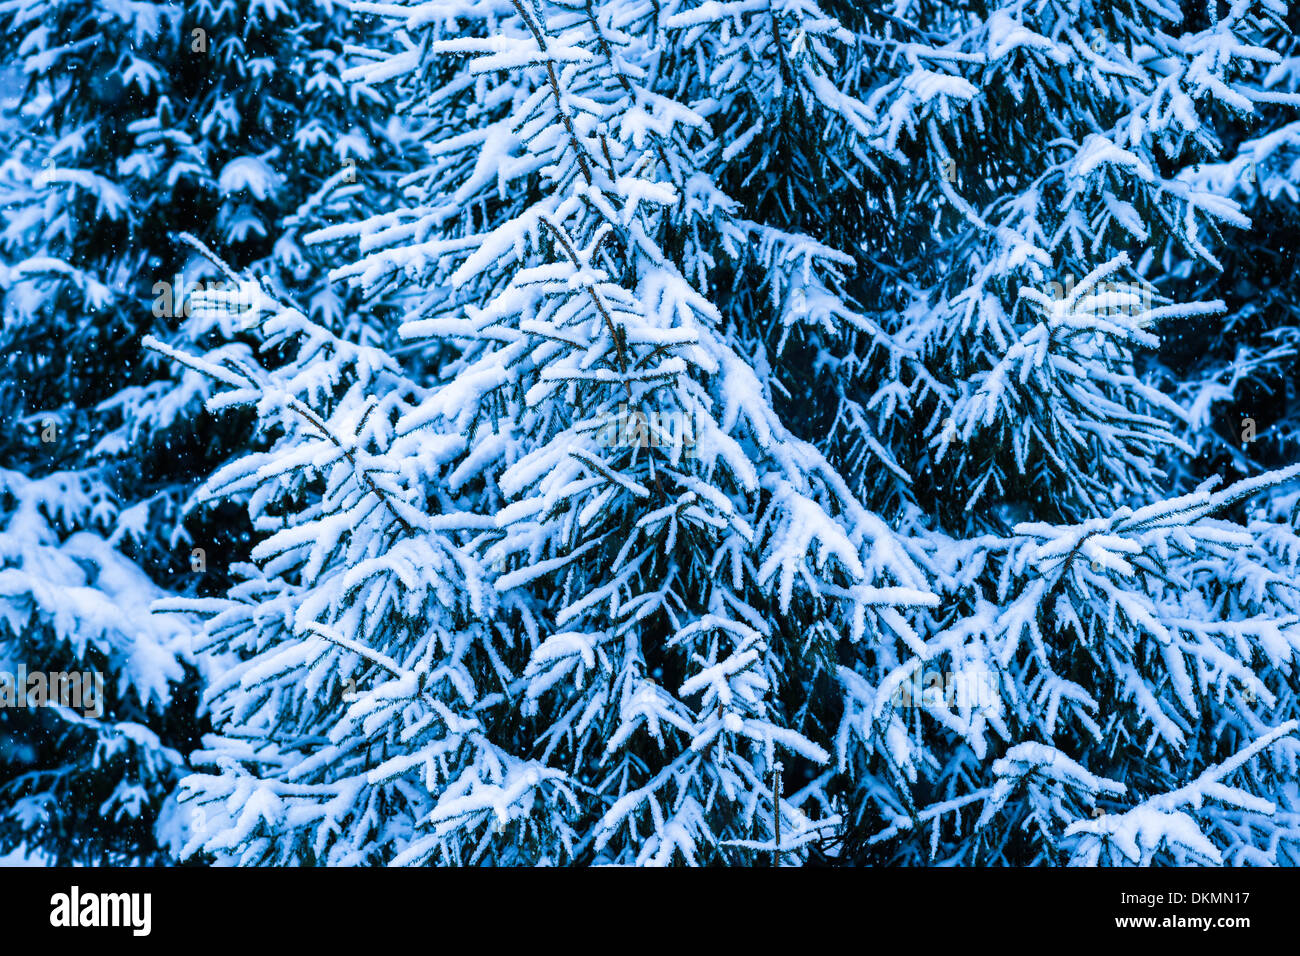 Stock Photo   Winter Snow Christmas Tree 2. Fresh Snow Covered Spruce Trees  In The Forest In Snowstorm. Dark Green, Blue And White Colors